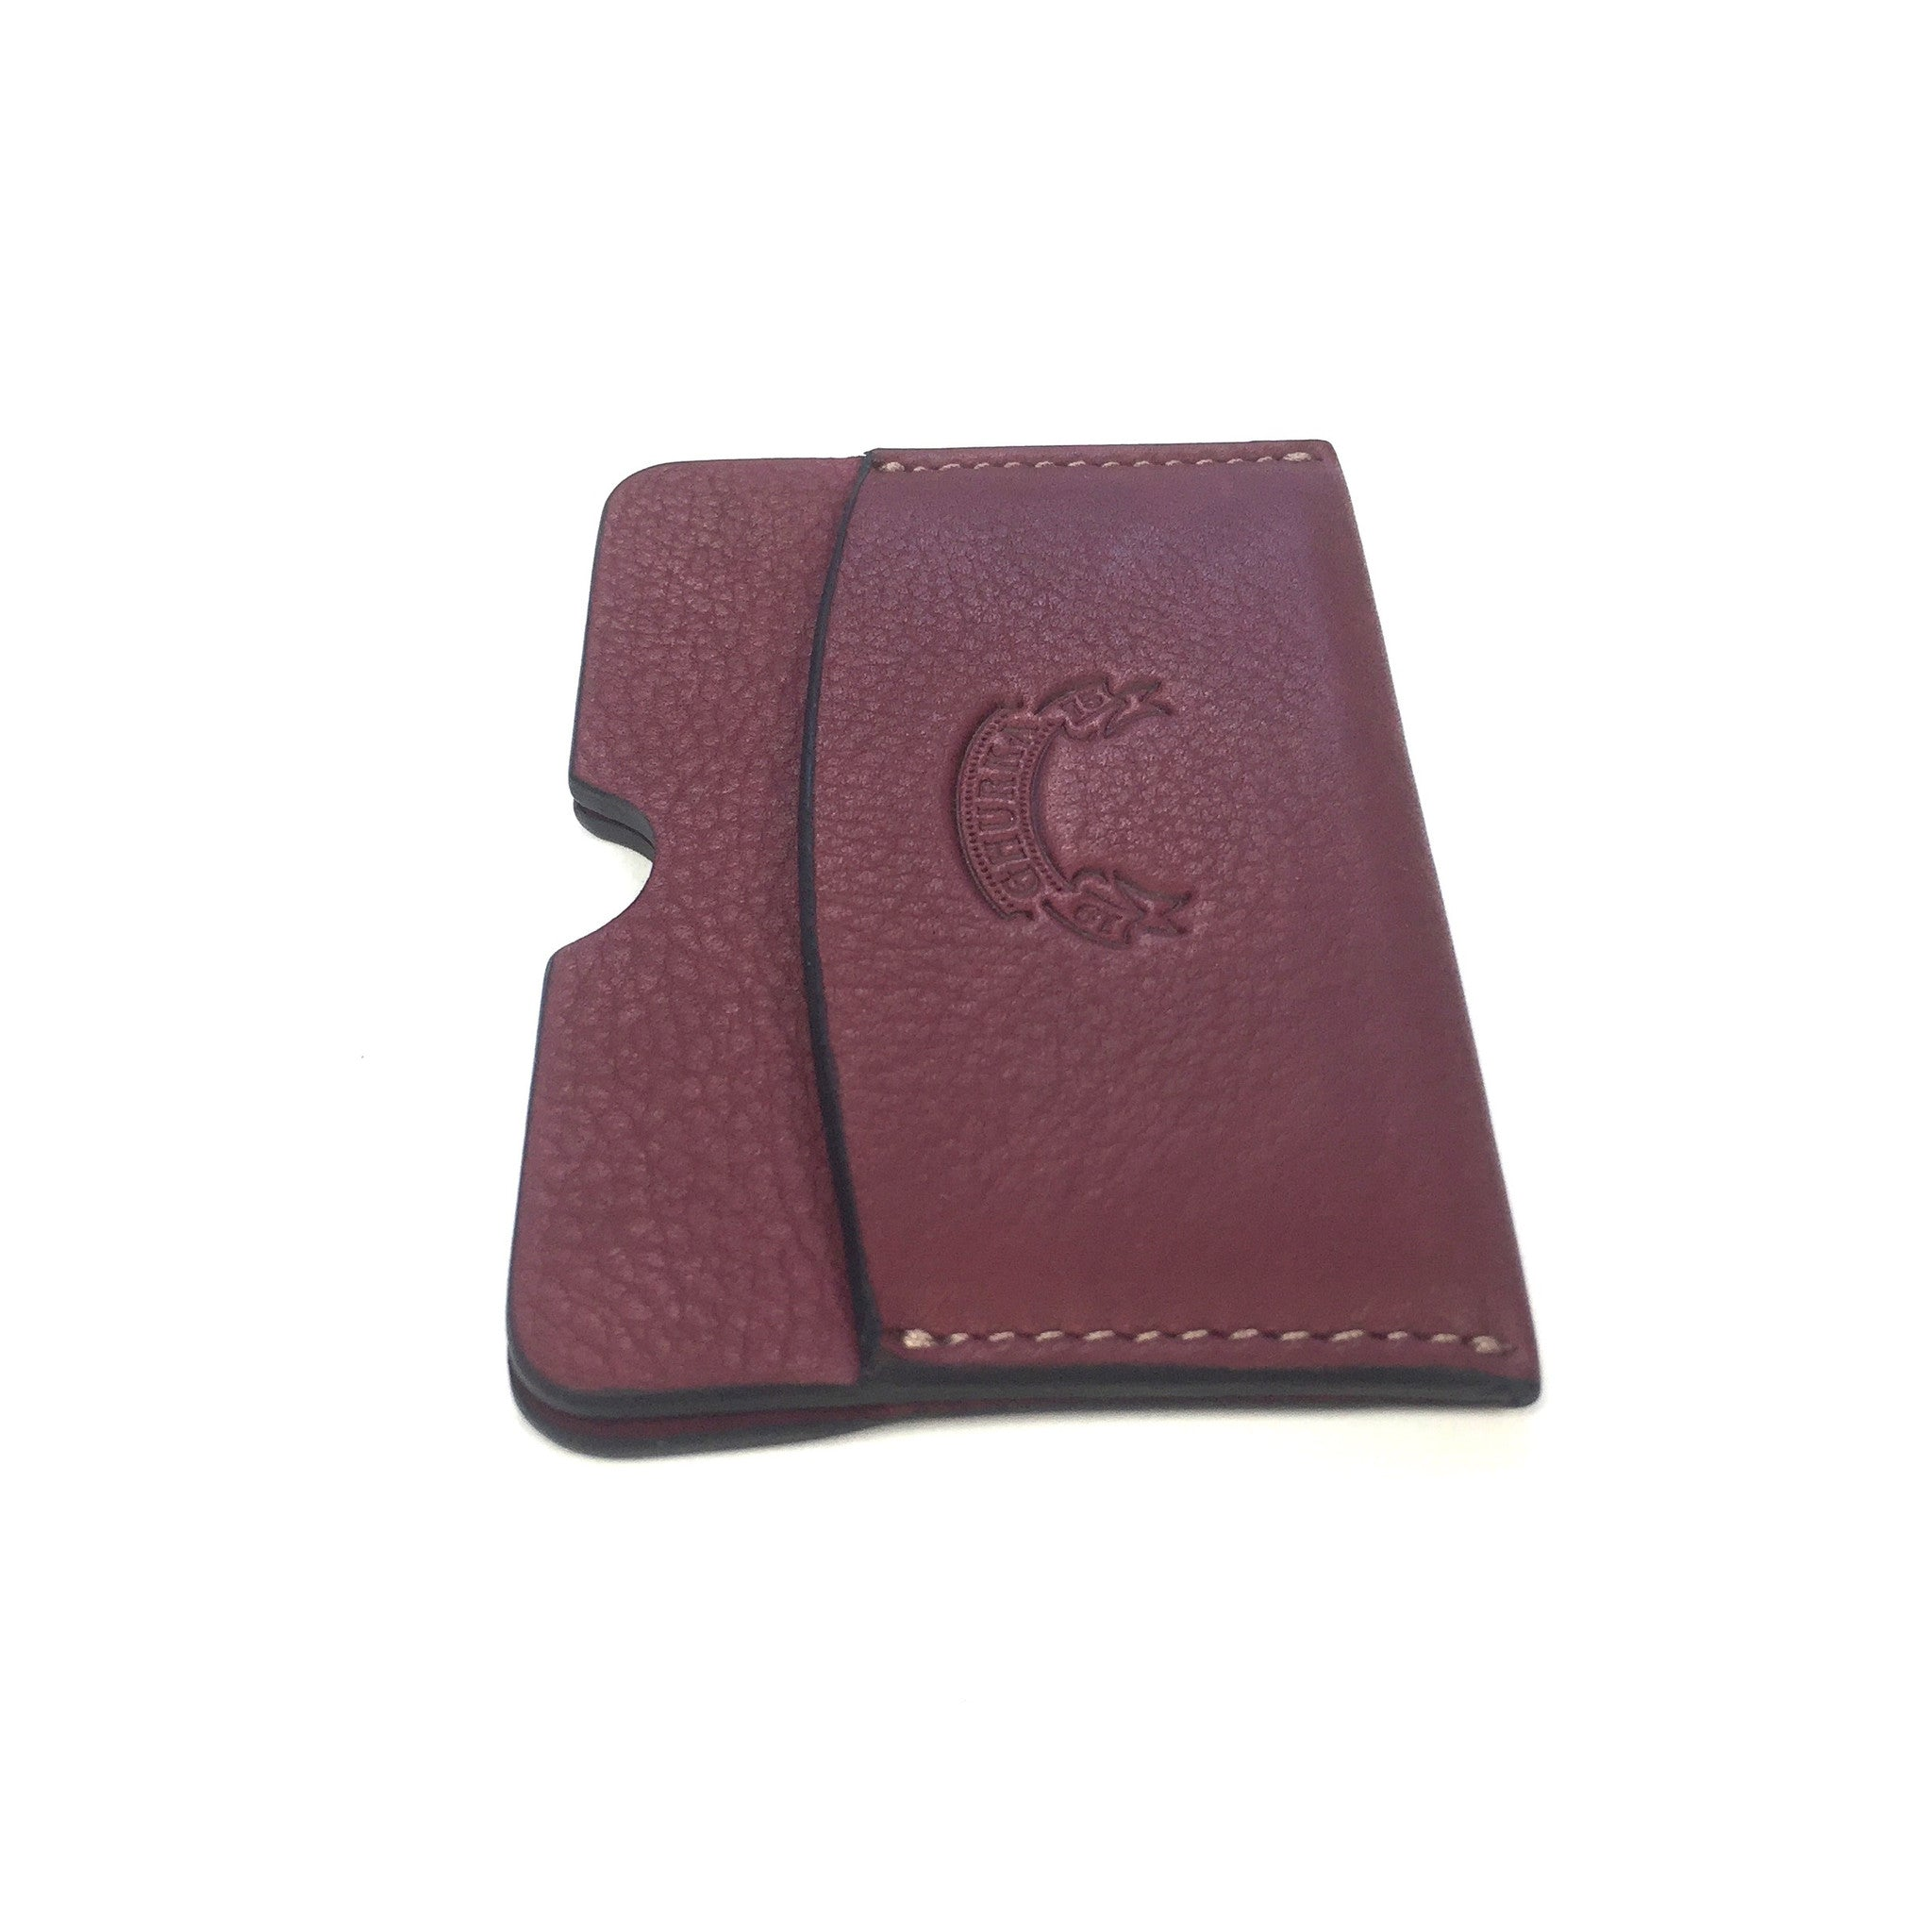 Ghurka - Tumbled Claret Leather Card Holder